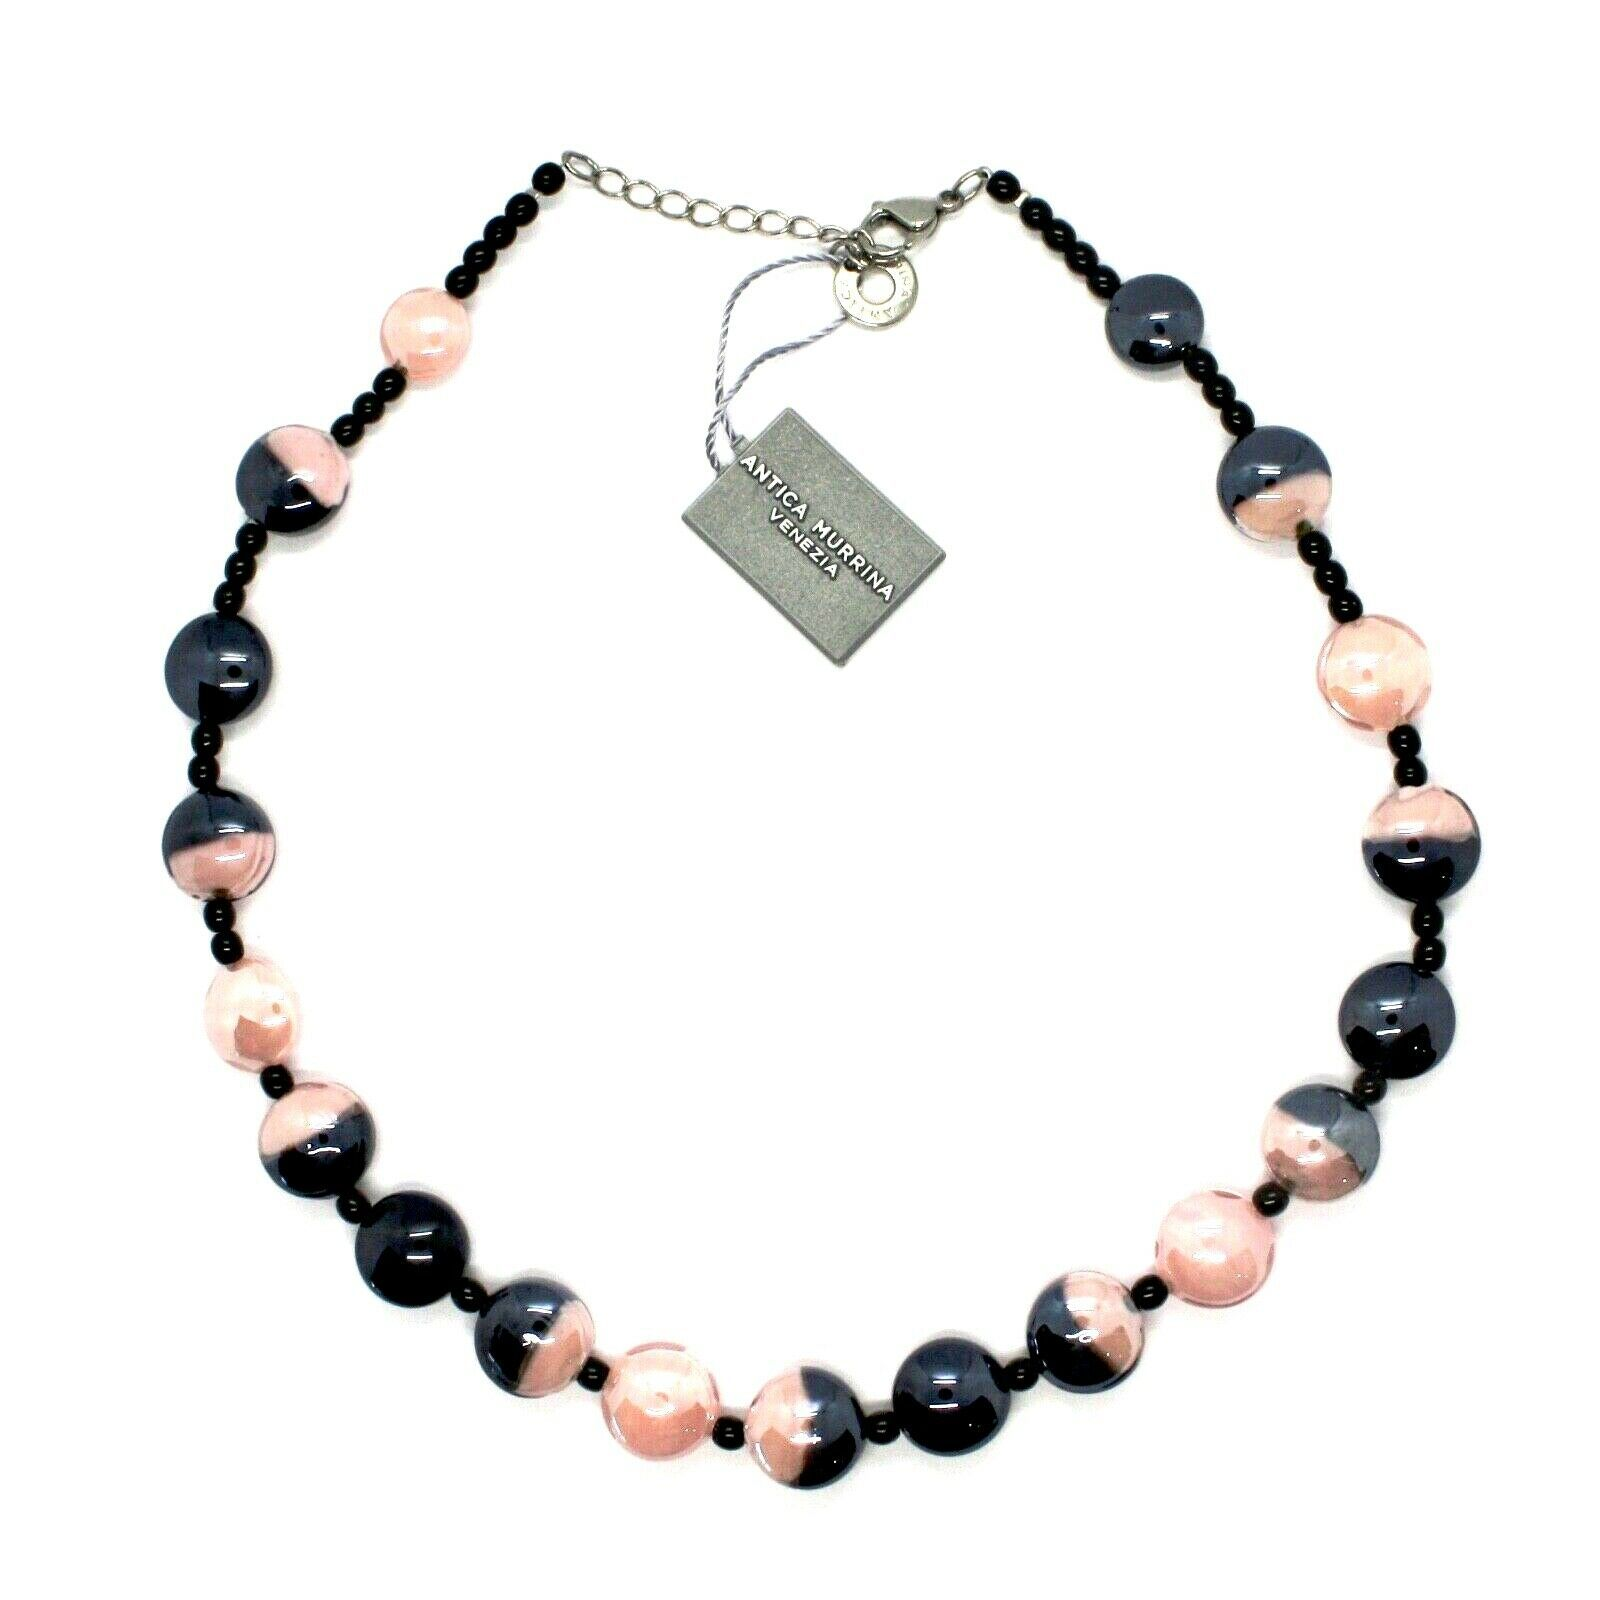 Necklace Antique Murrina COA39A03 with Murano Glass Pink and Black to Choker